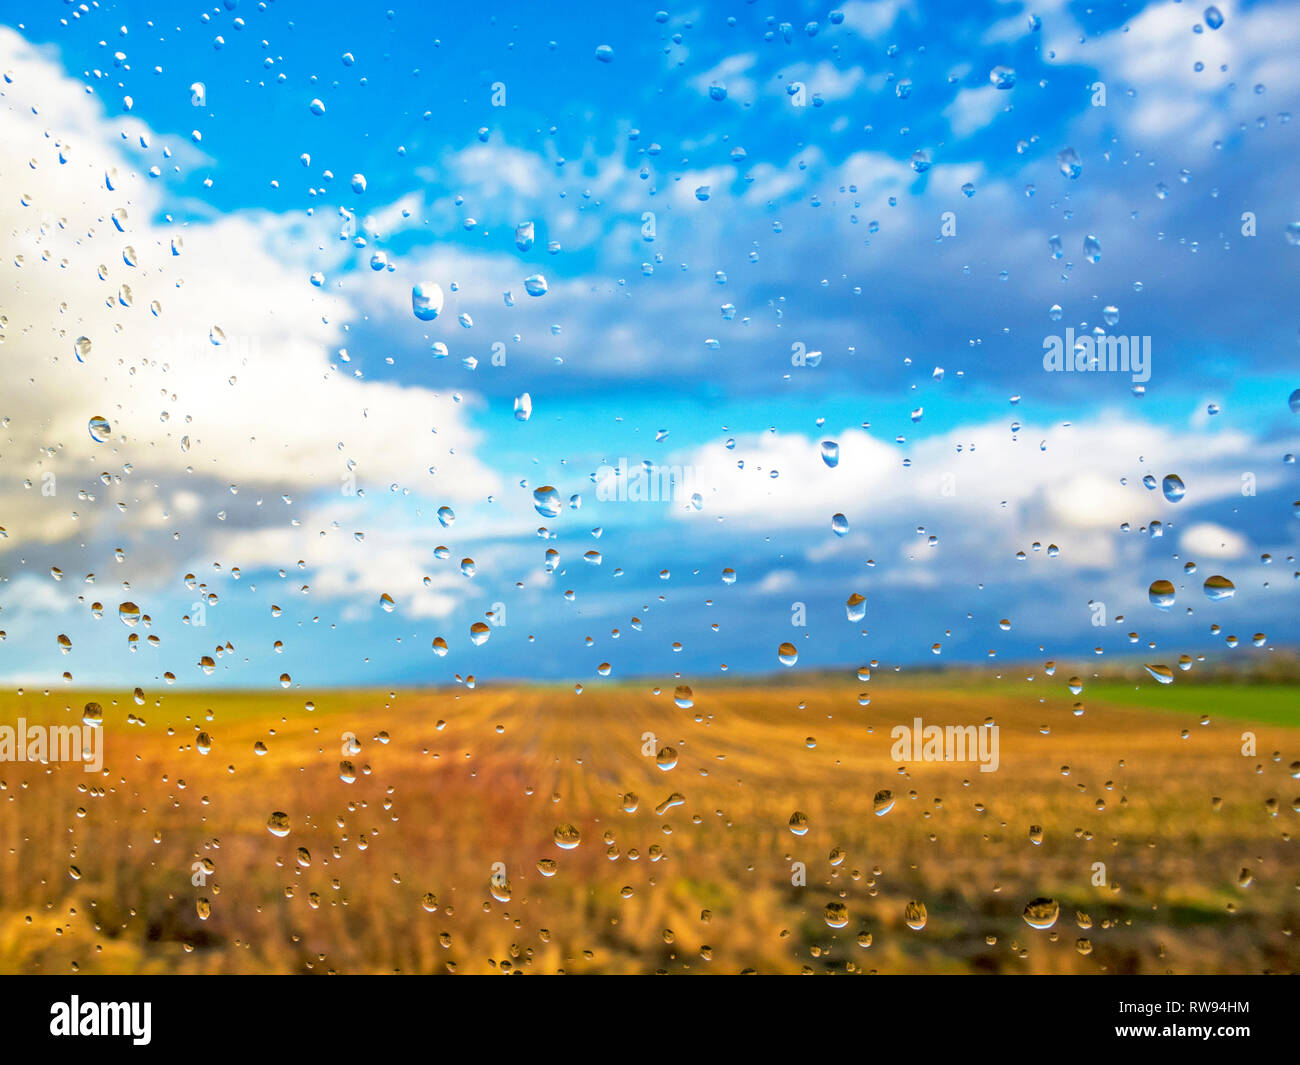 Blurred cloudy sky and cultivated fields seen through a wet car window covered with rain drops with image reflections within - Stock Image